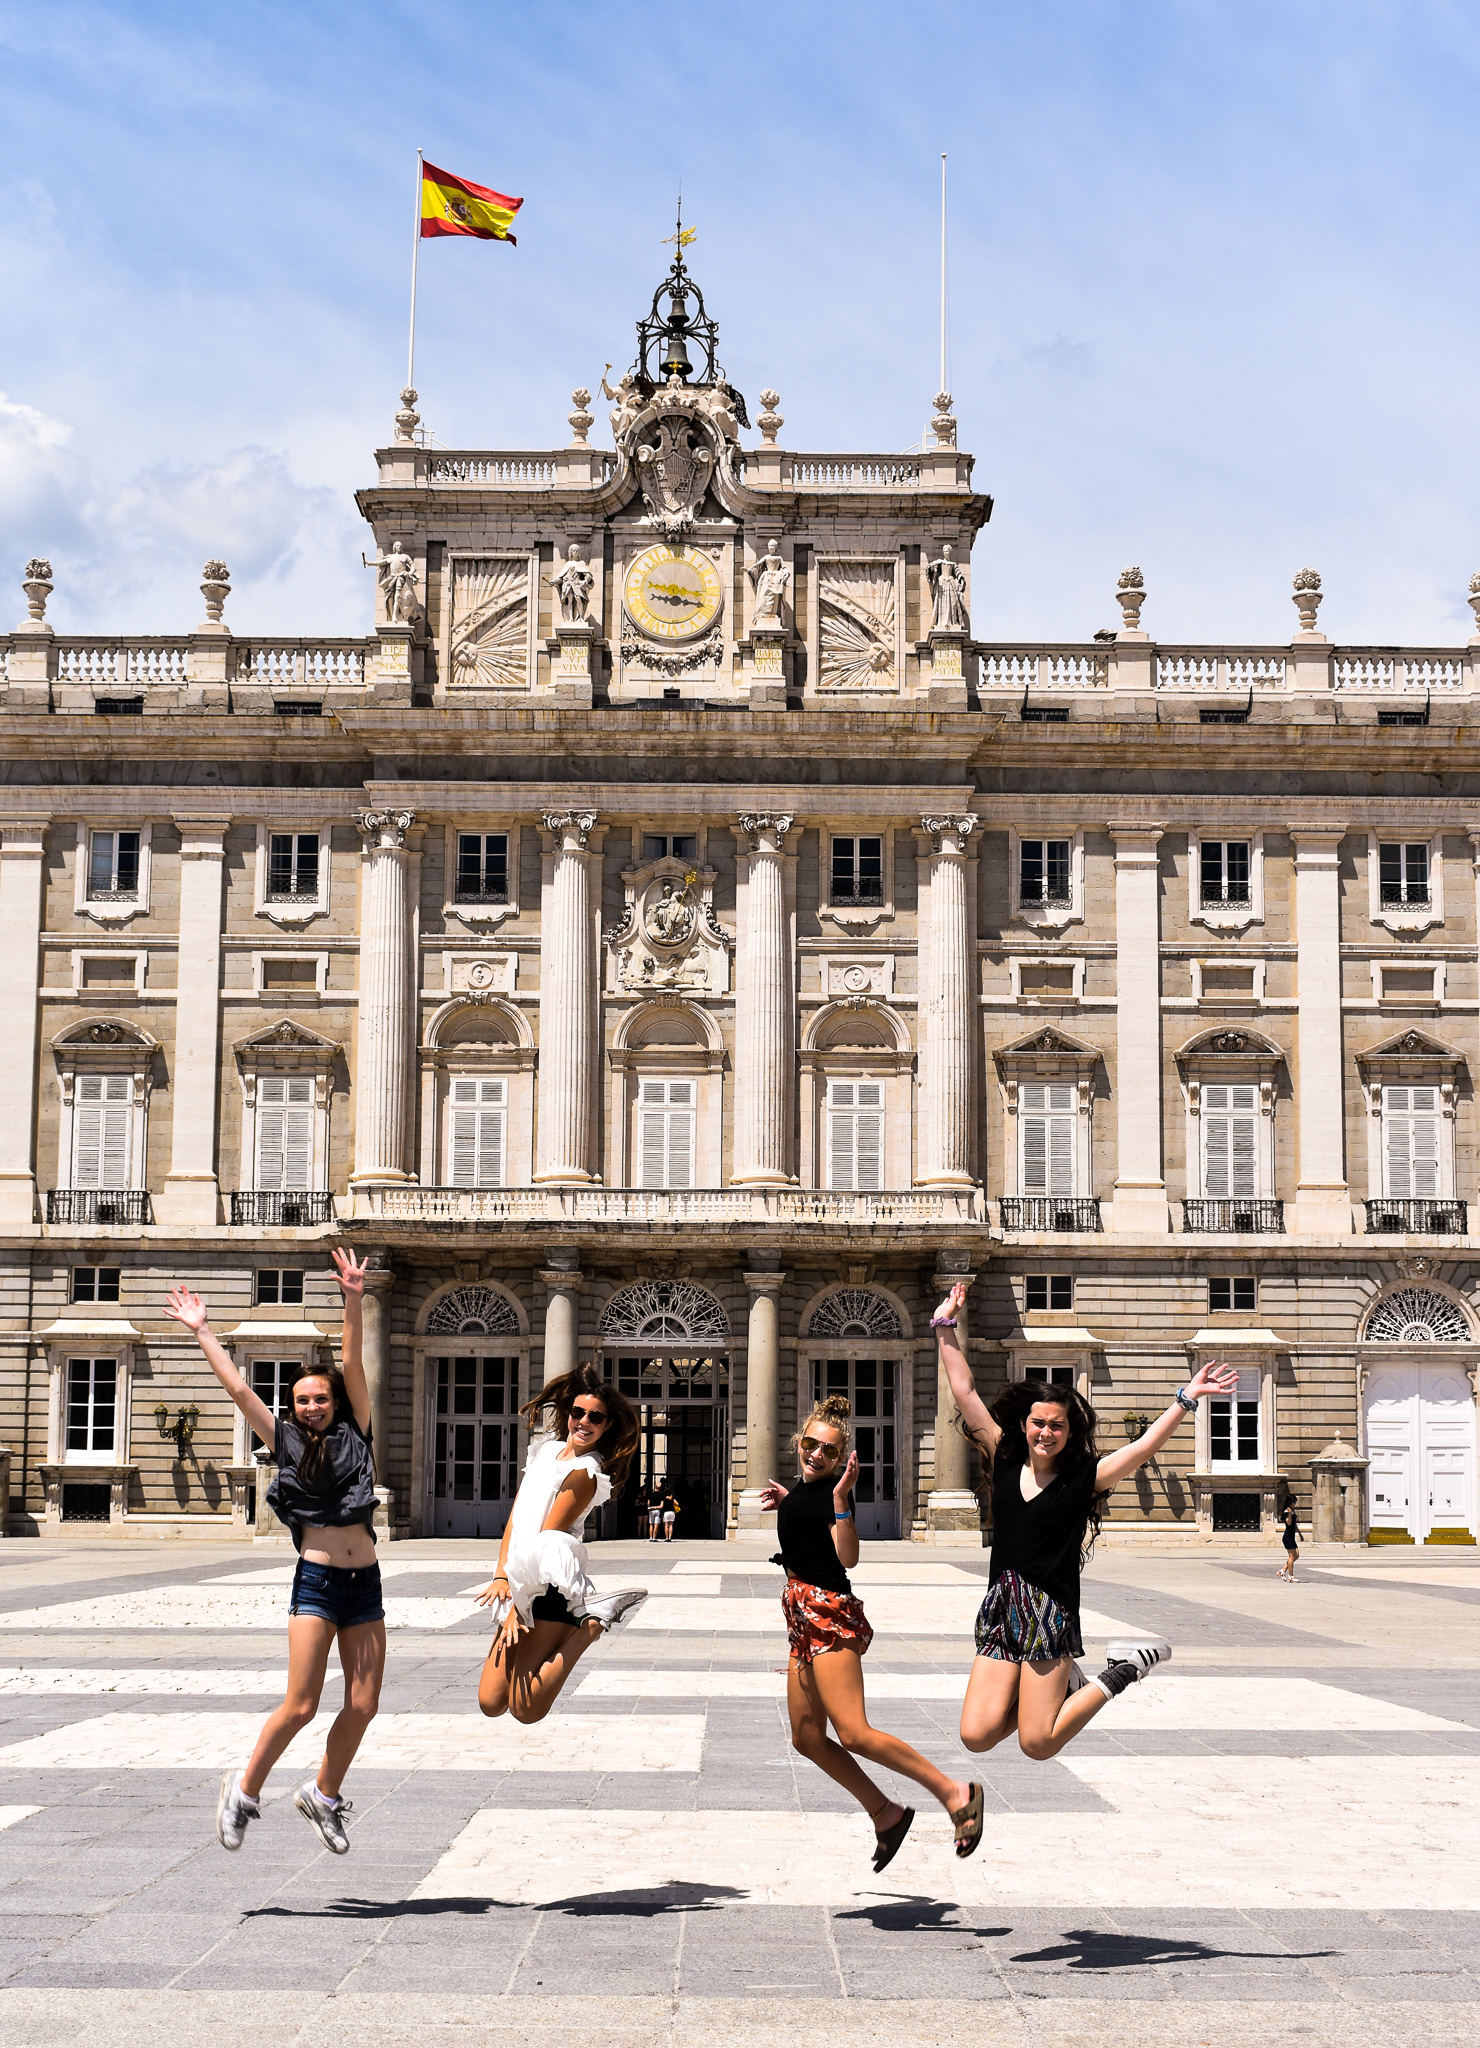 Summer Program - Group Travel | Travel For Teens: Europe for Older Teens - Spain and Portugal